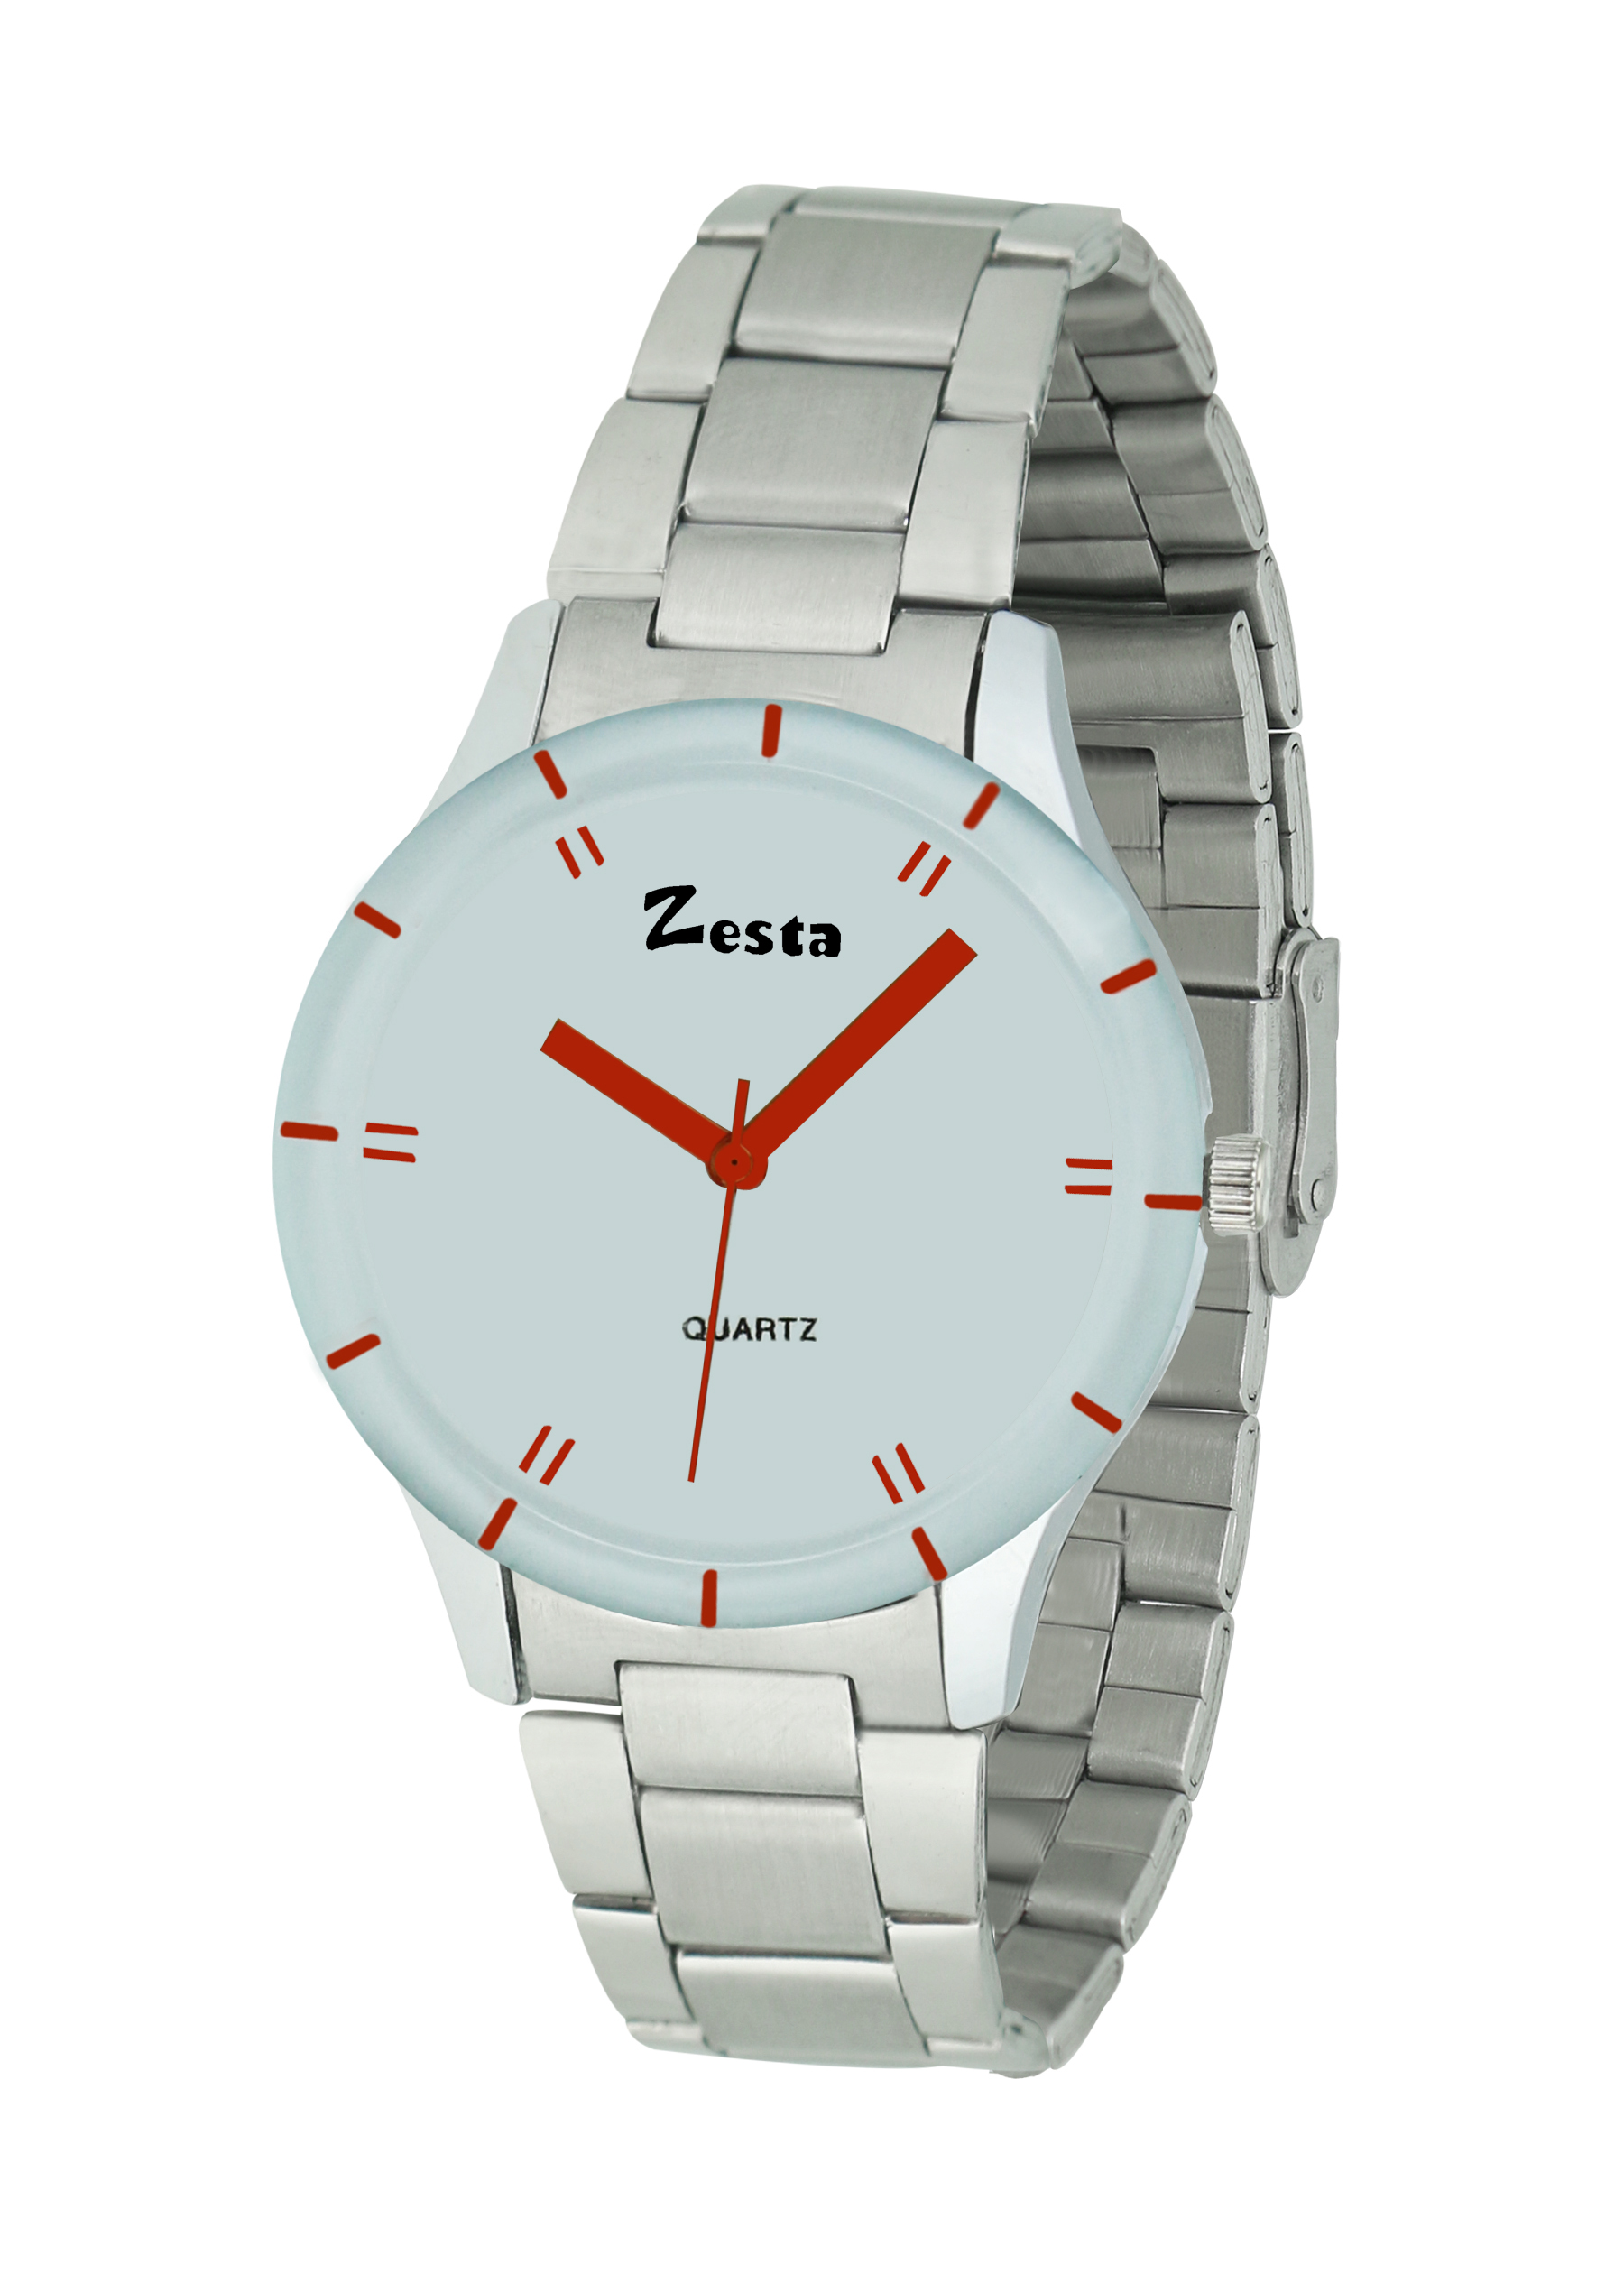 Zesta 16 Analog Watches for Girls/Watches for Women/Watch for Women Stylish/Watch for Girls Analogue Round Dial Metal Strips  White Silver